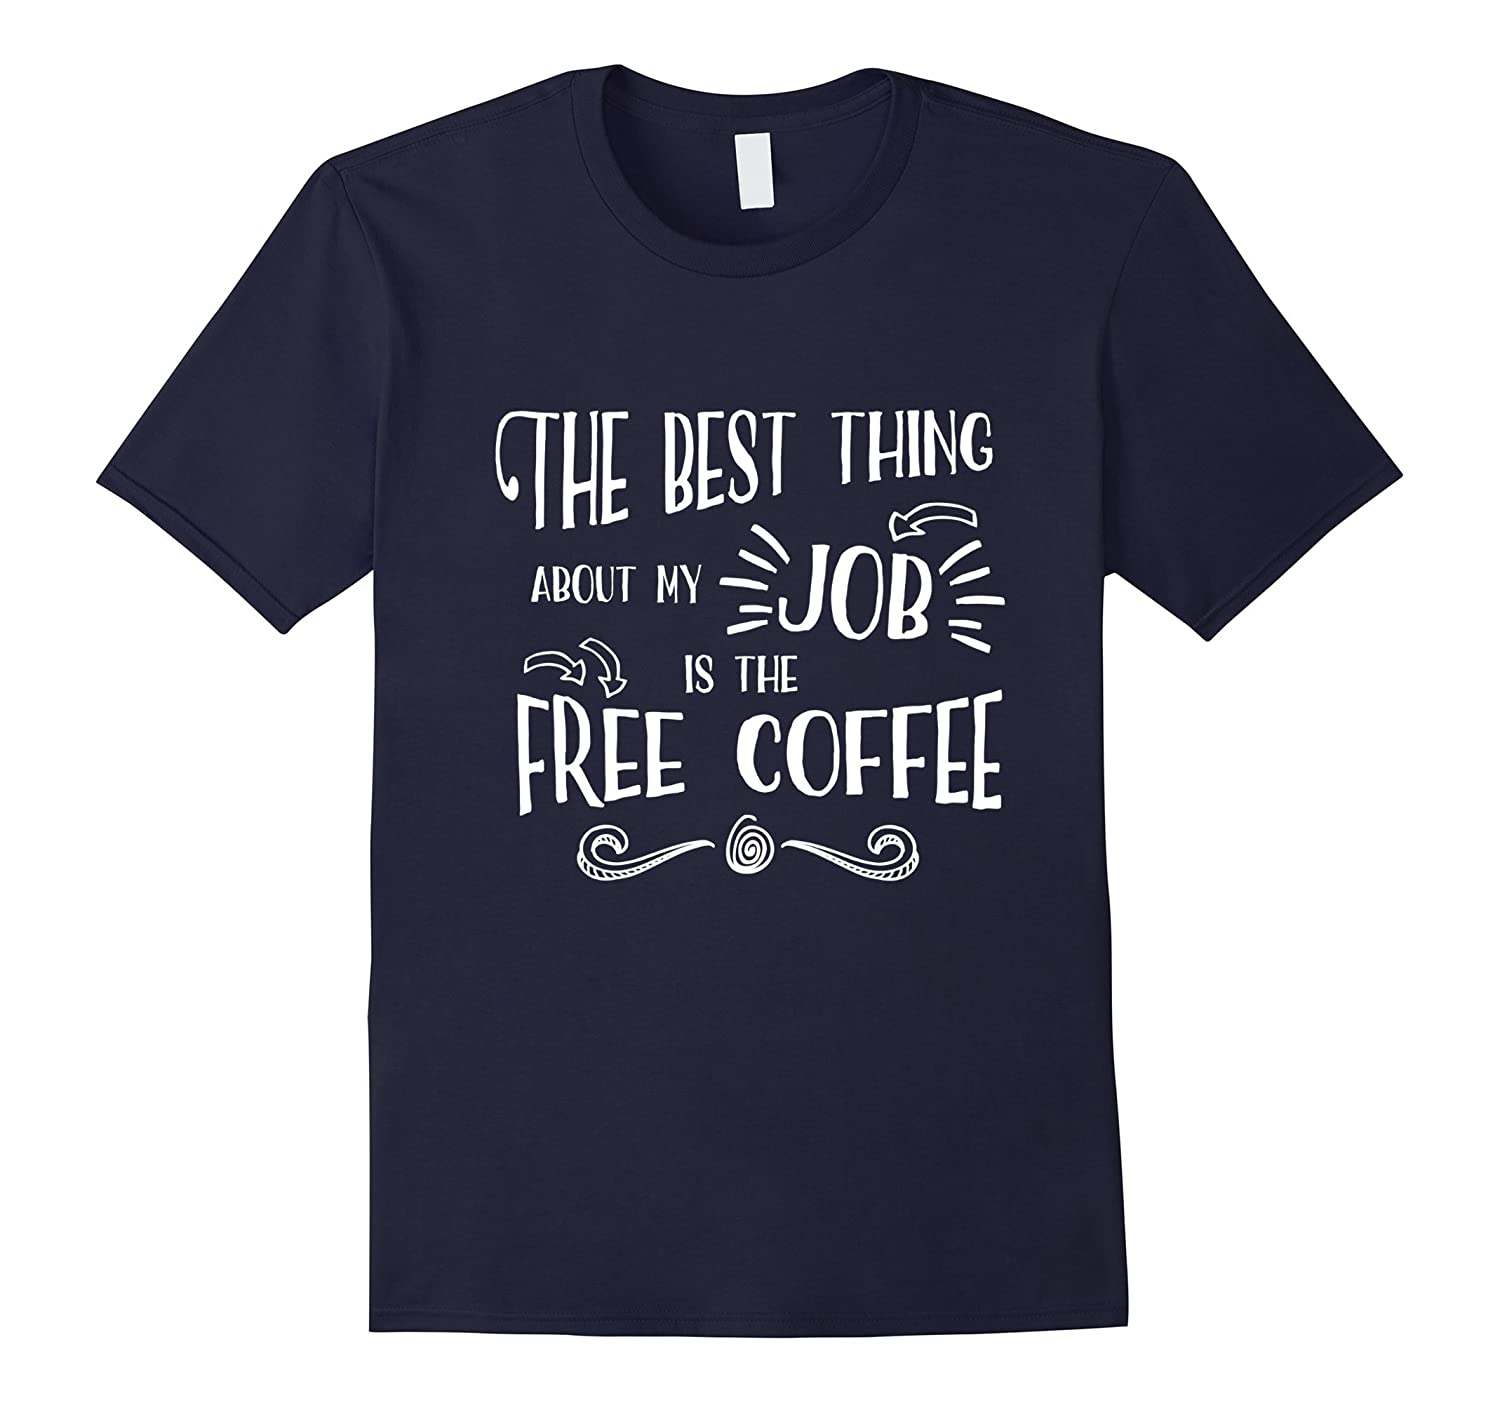 Best Thing About My Job is Free Coffee-Work Employee T-shirt-TJ